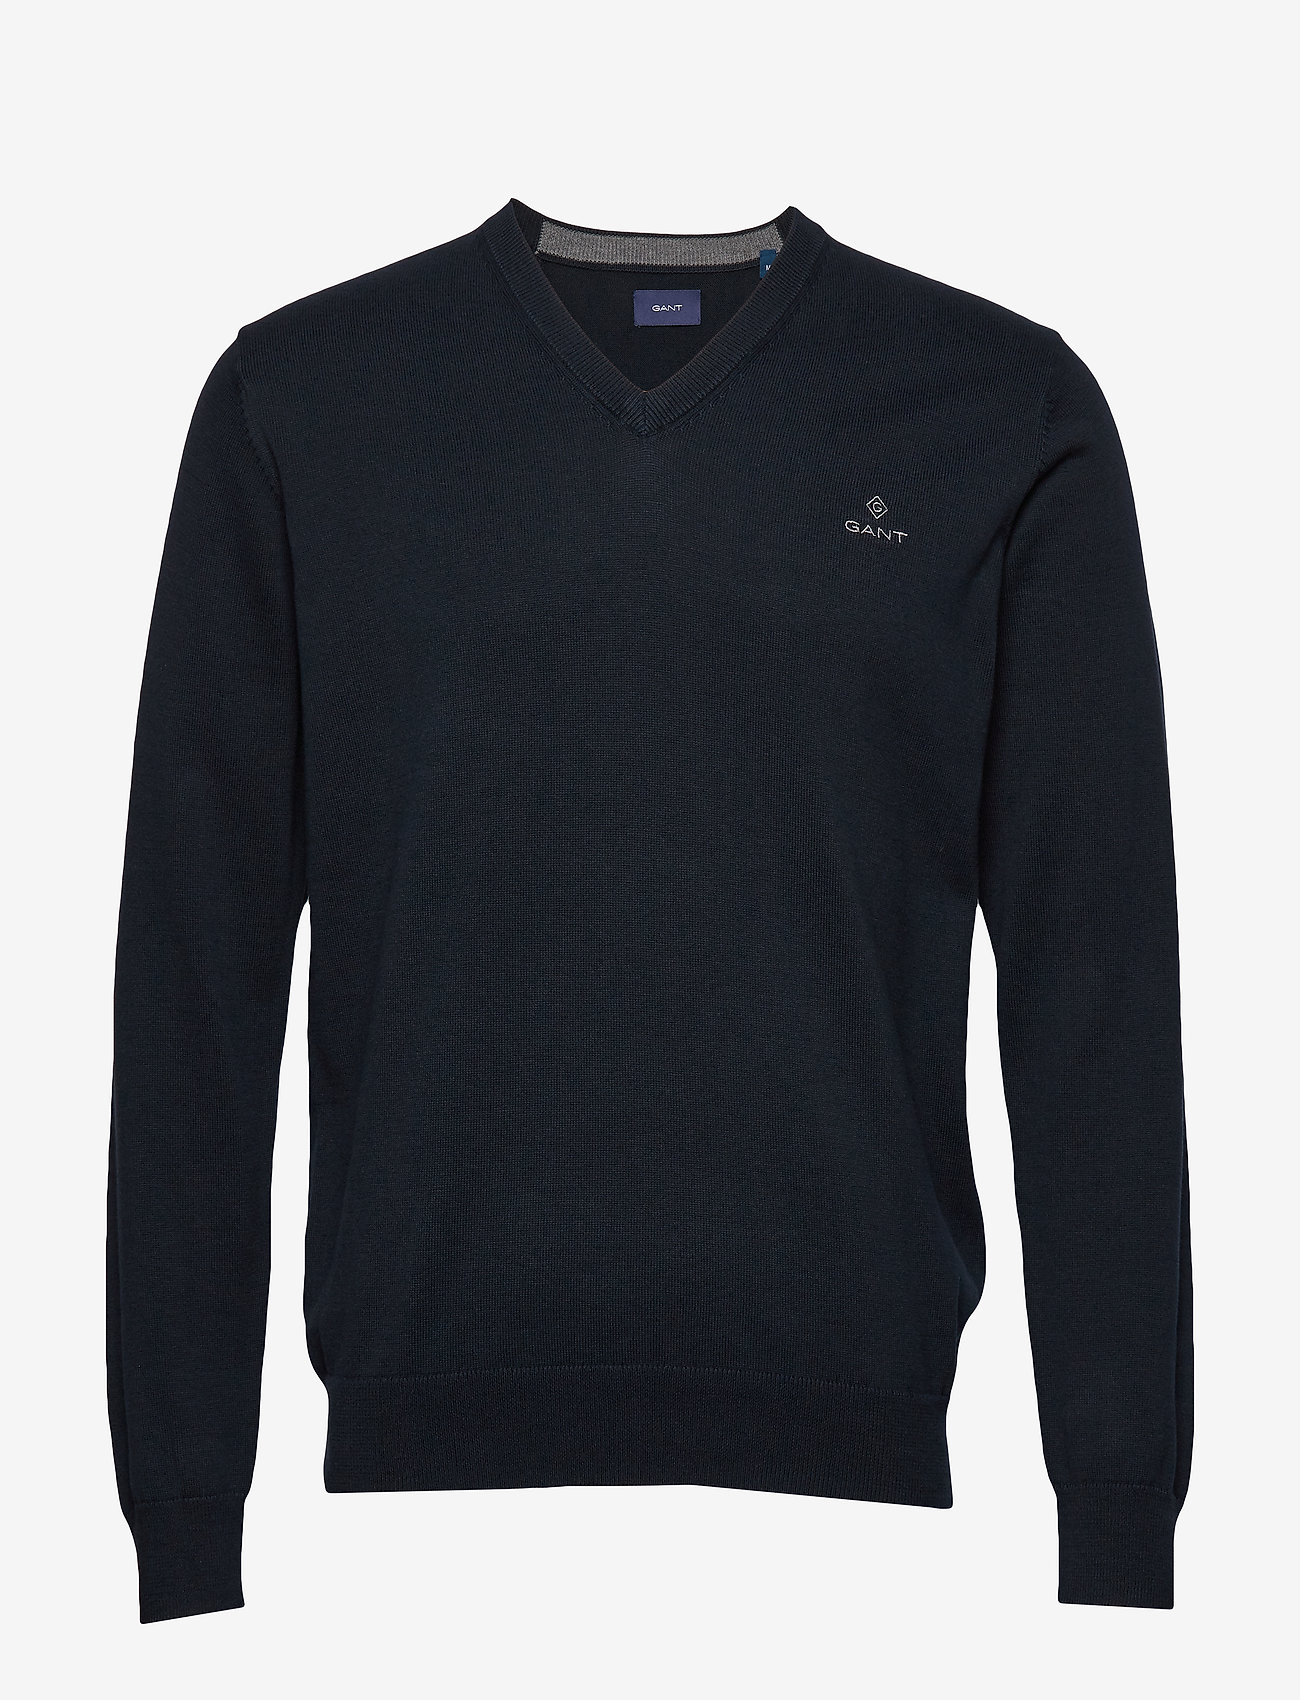 GANT - CLASSIC COTTON V-NECK - knitted v-necks - evening blue - 0